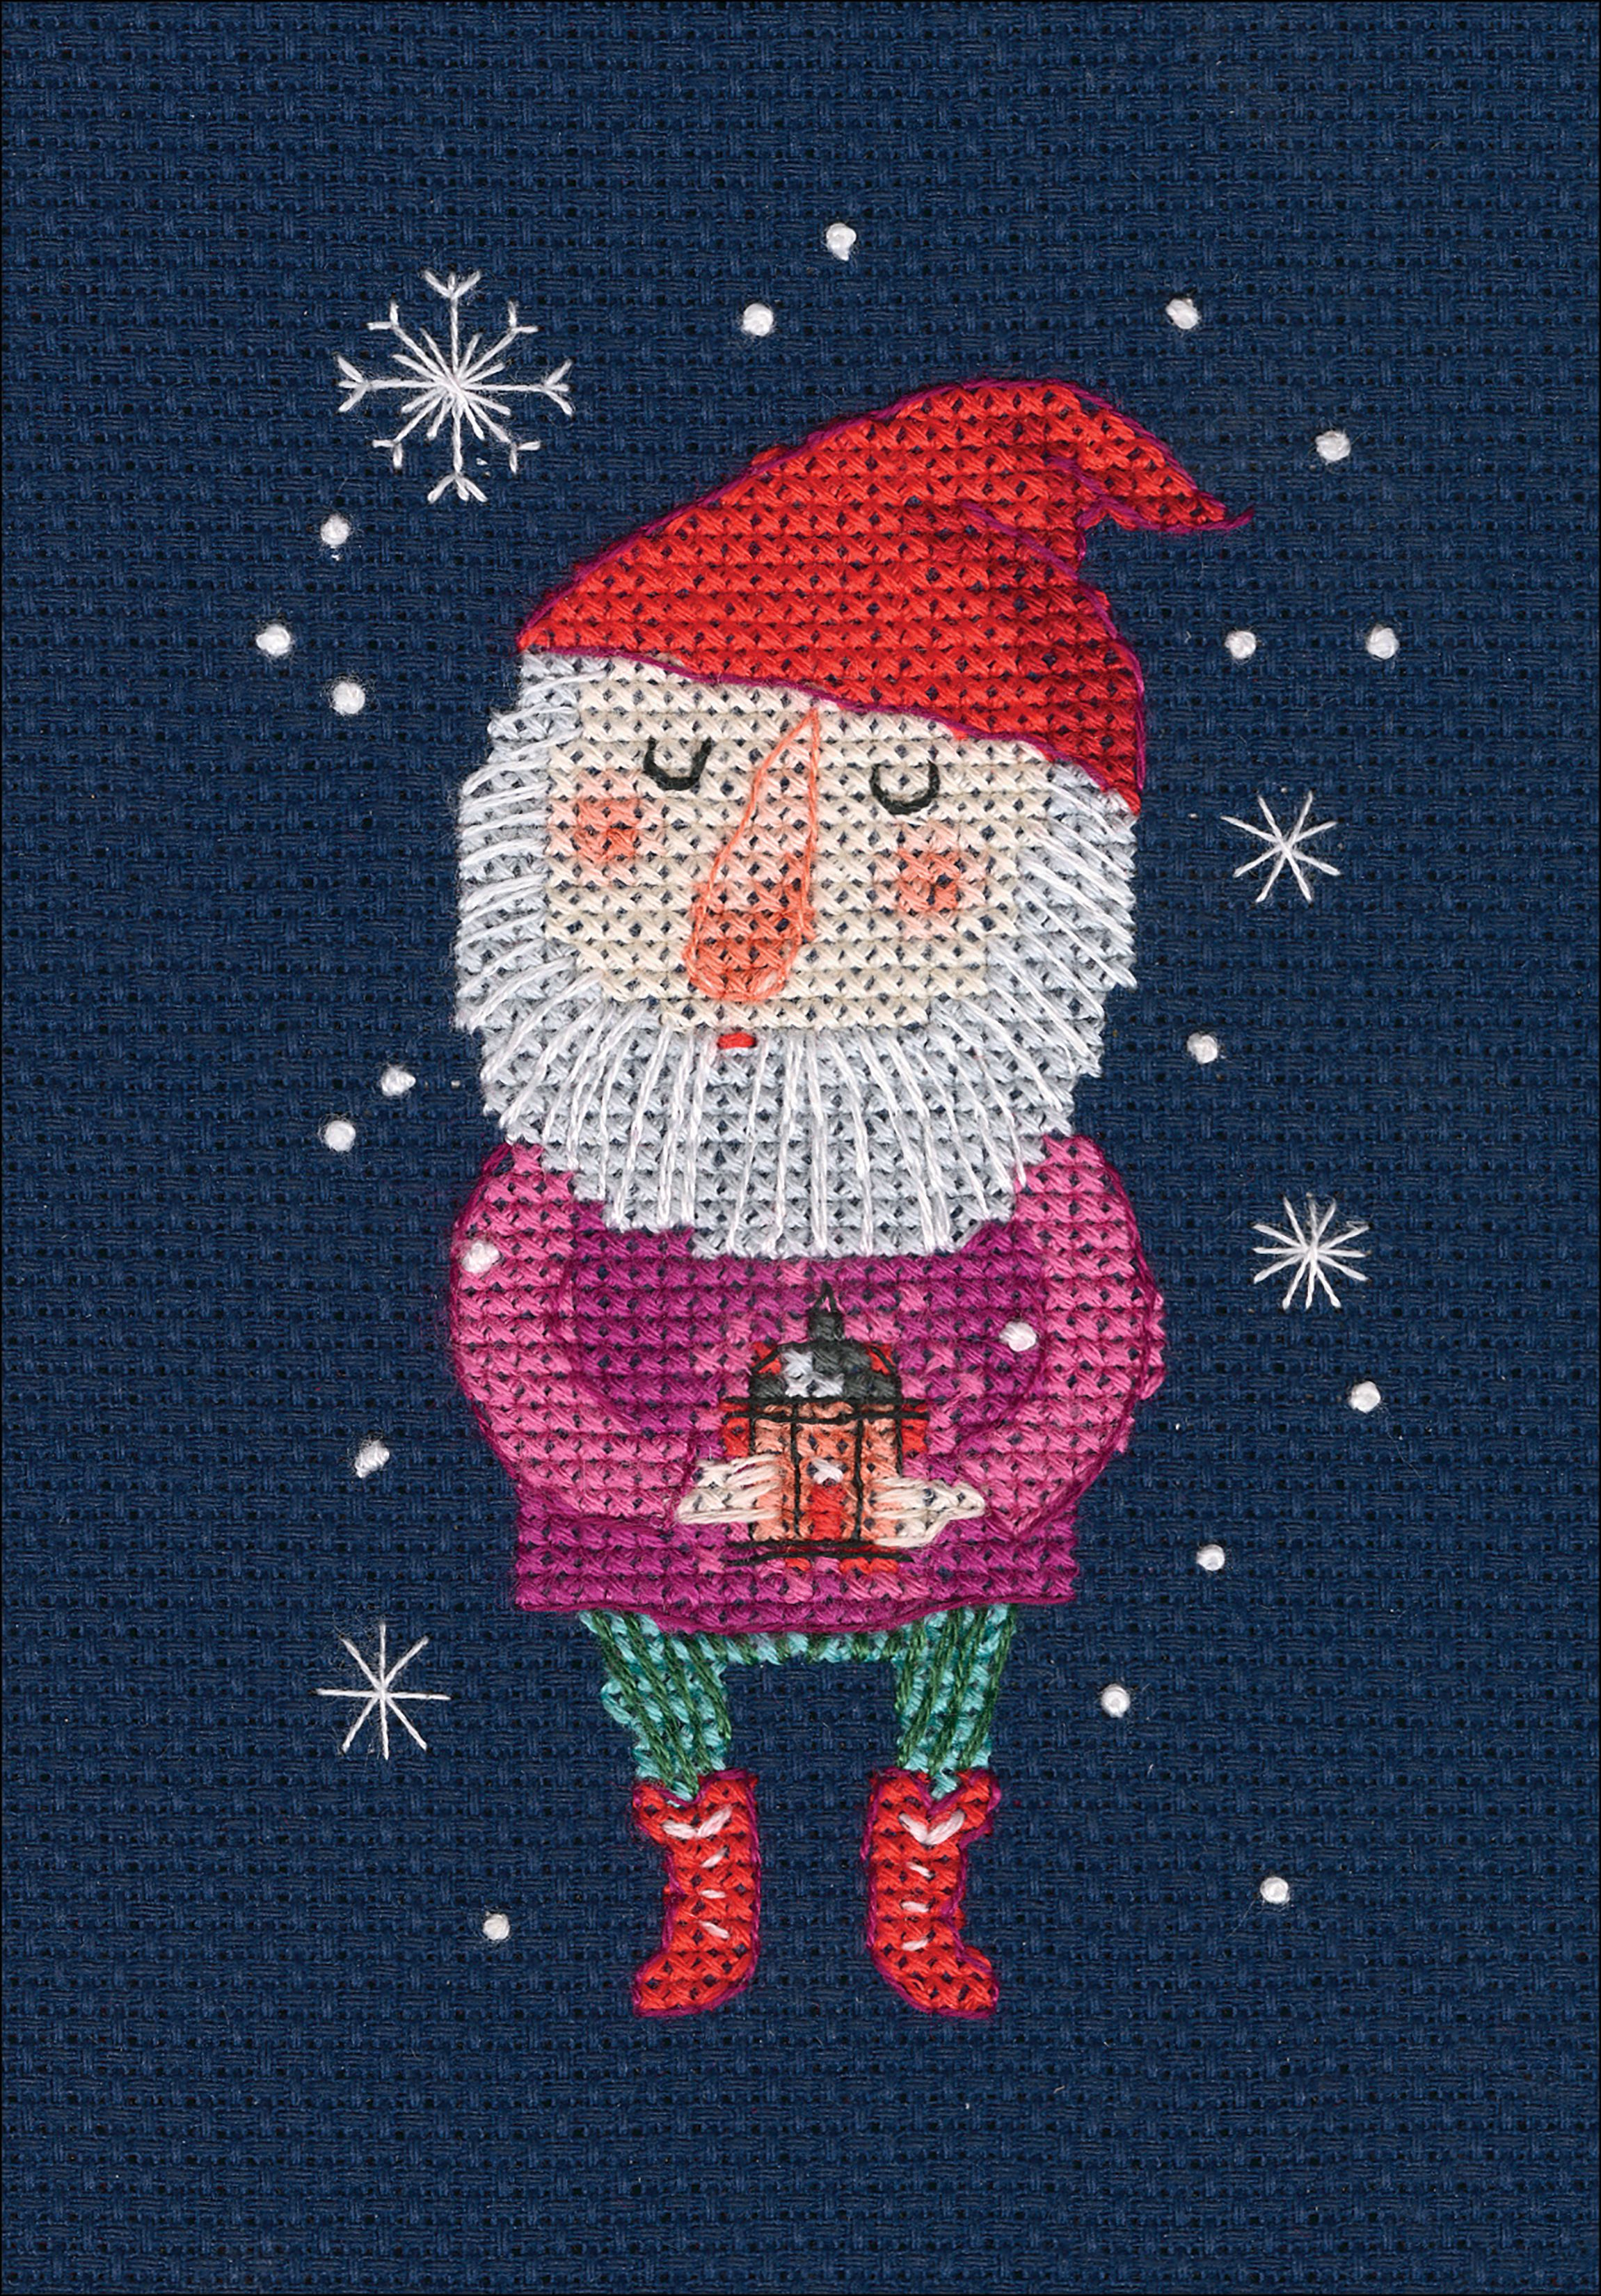 Size: Cotton thread, Cross Stitch Fabric CT number: 11ct unprint canvas gnome place like home cross stitchX-mas package 18ct 14ct 11ct white cloth cotton thread embroidery DIY handmade needlework